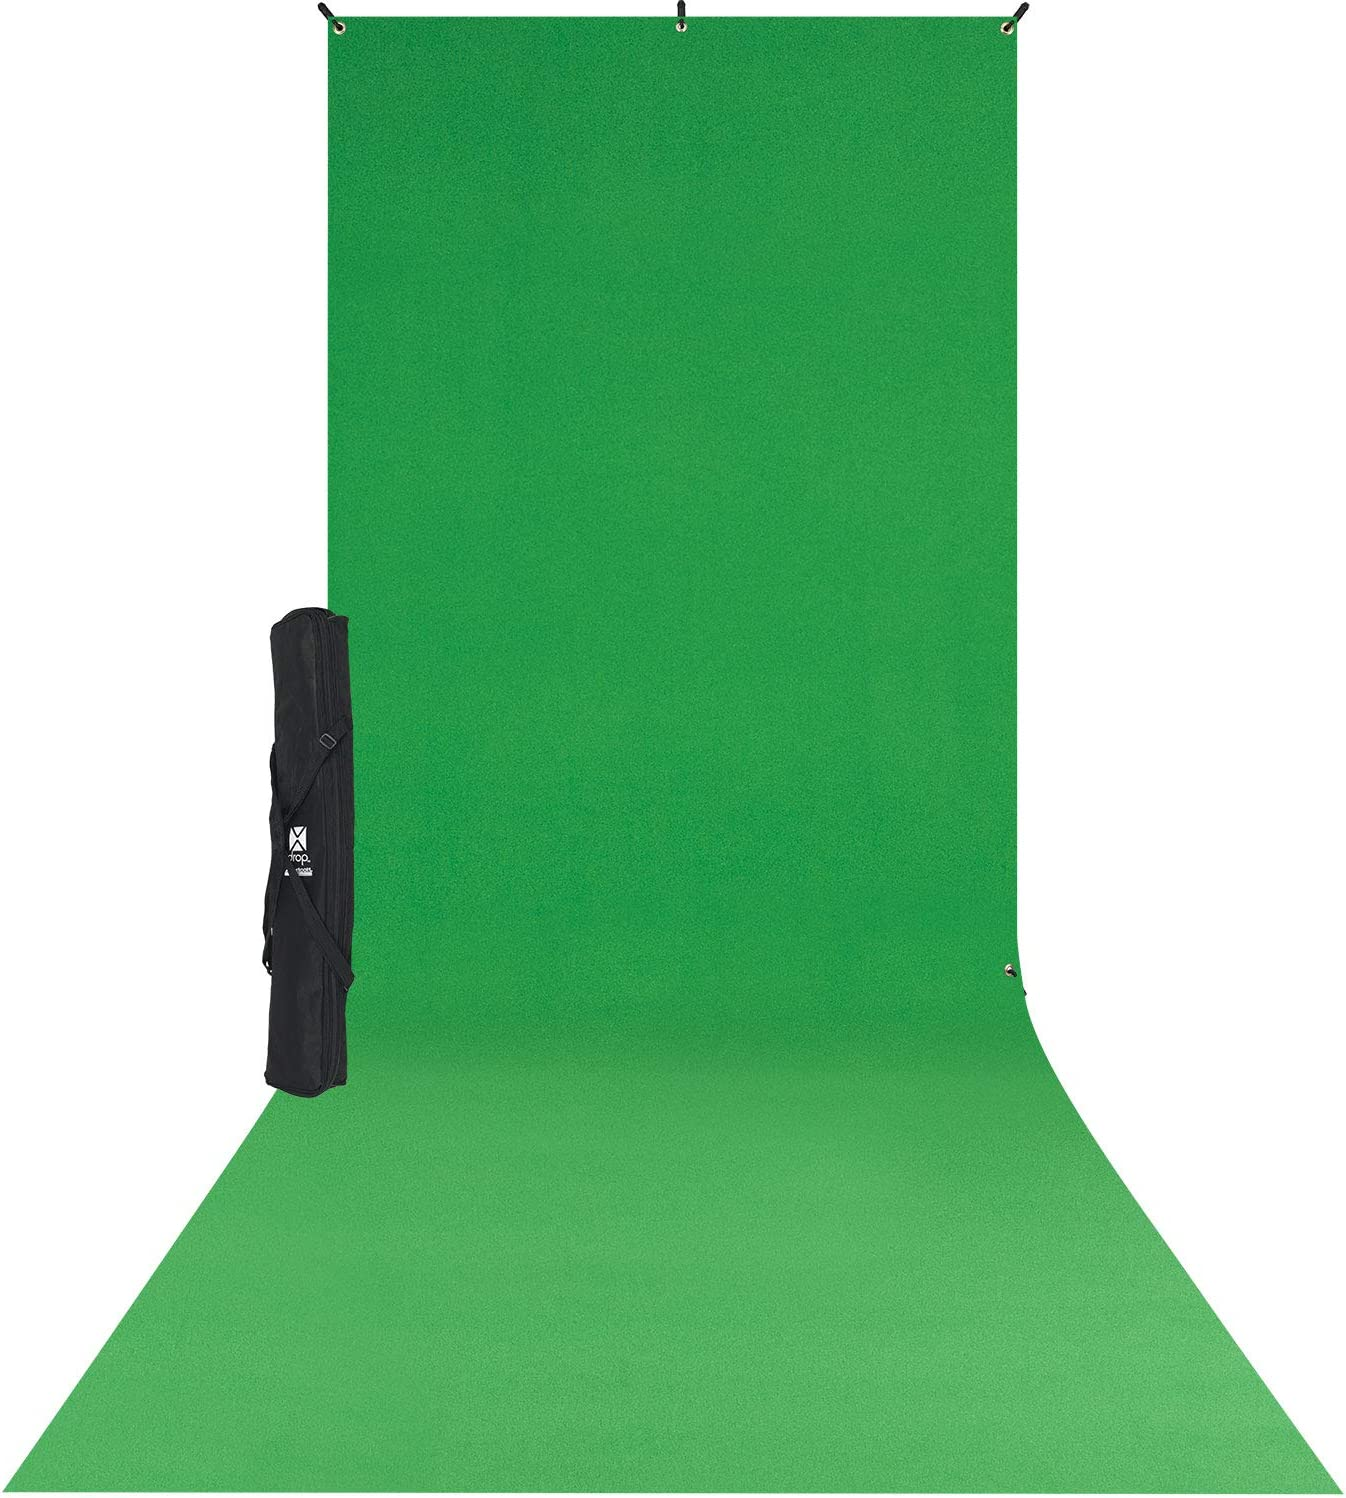 Westcott X-Drop Wrinkle-Resistant Photography and Video Conference Backdrop Kit - Chroma-Key Green Screen Sweep (5' x 12') Quick Assemble, Portable Background for Portraits and Headshots